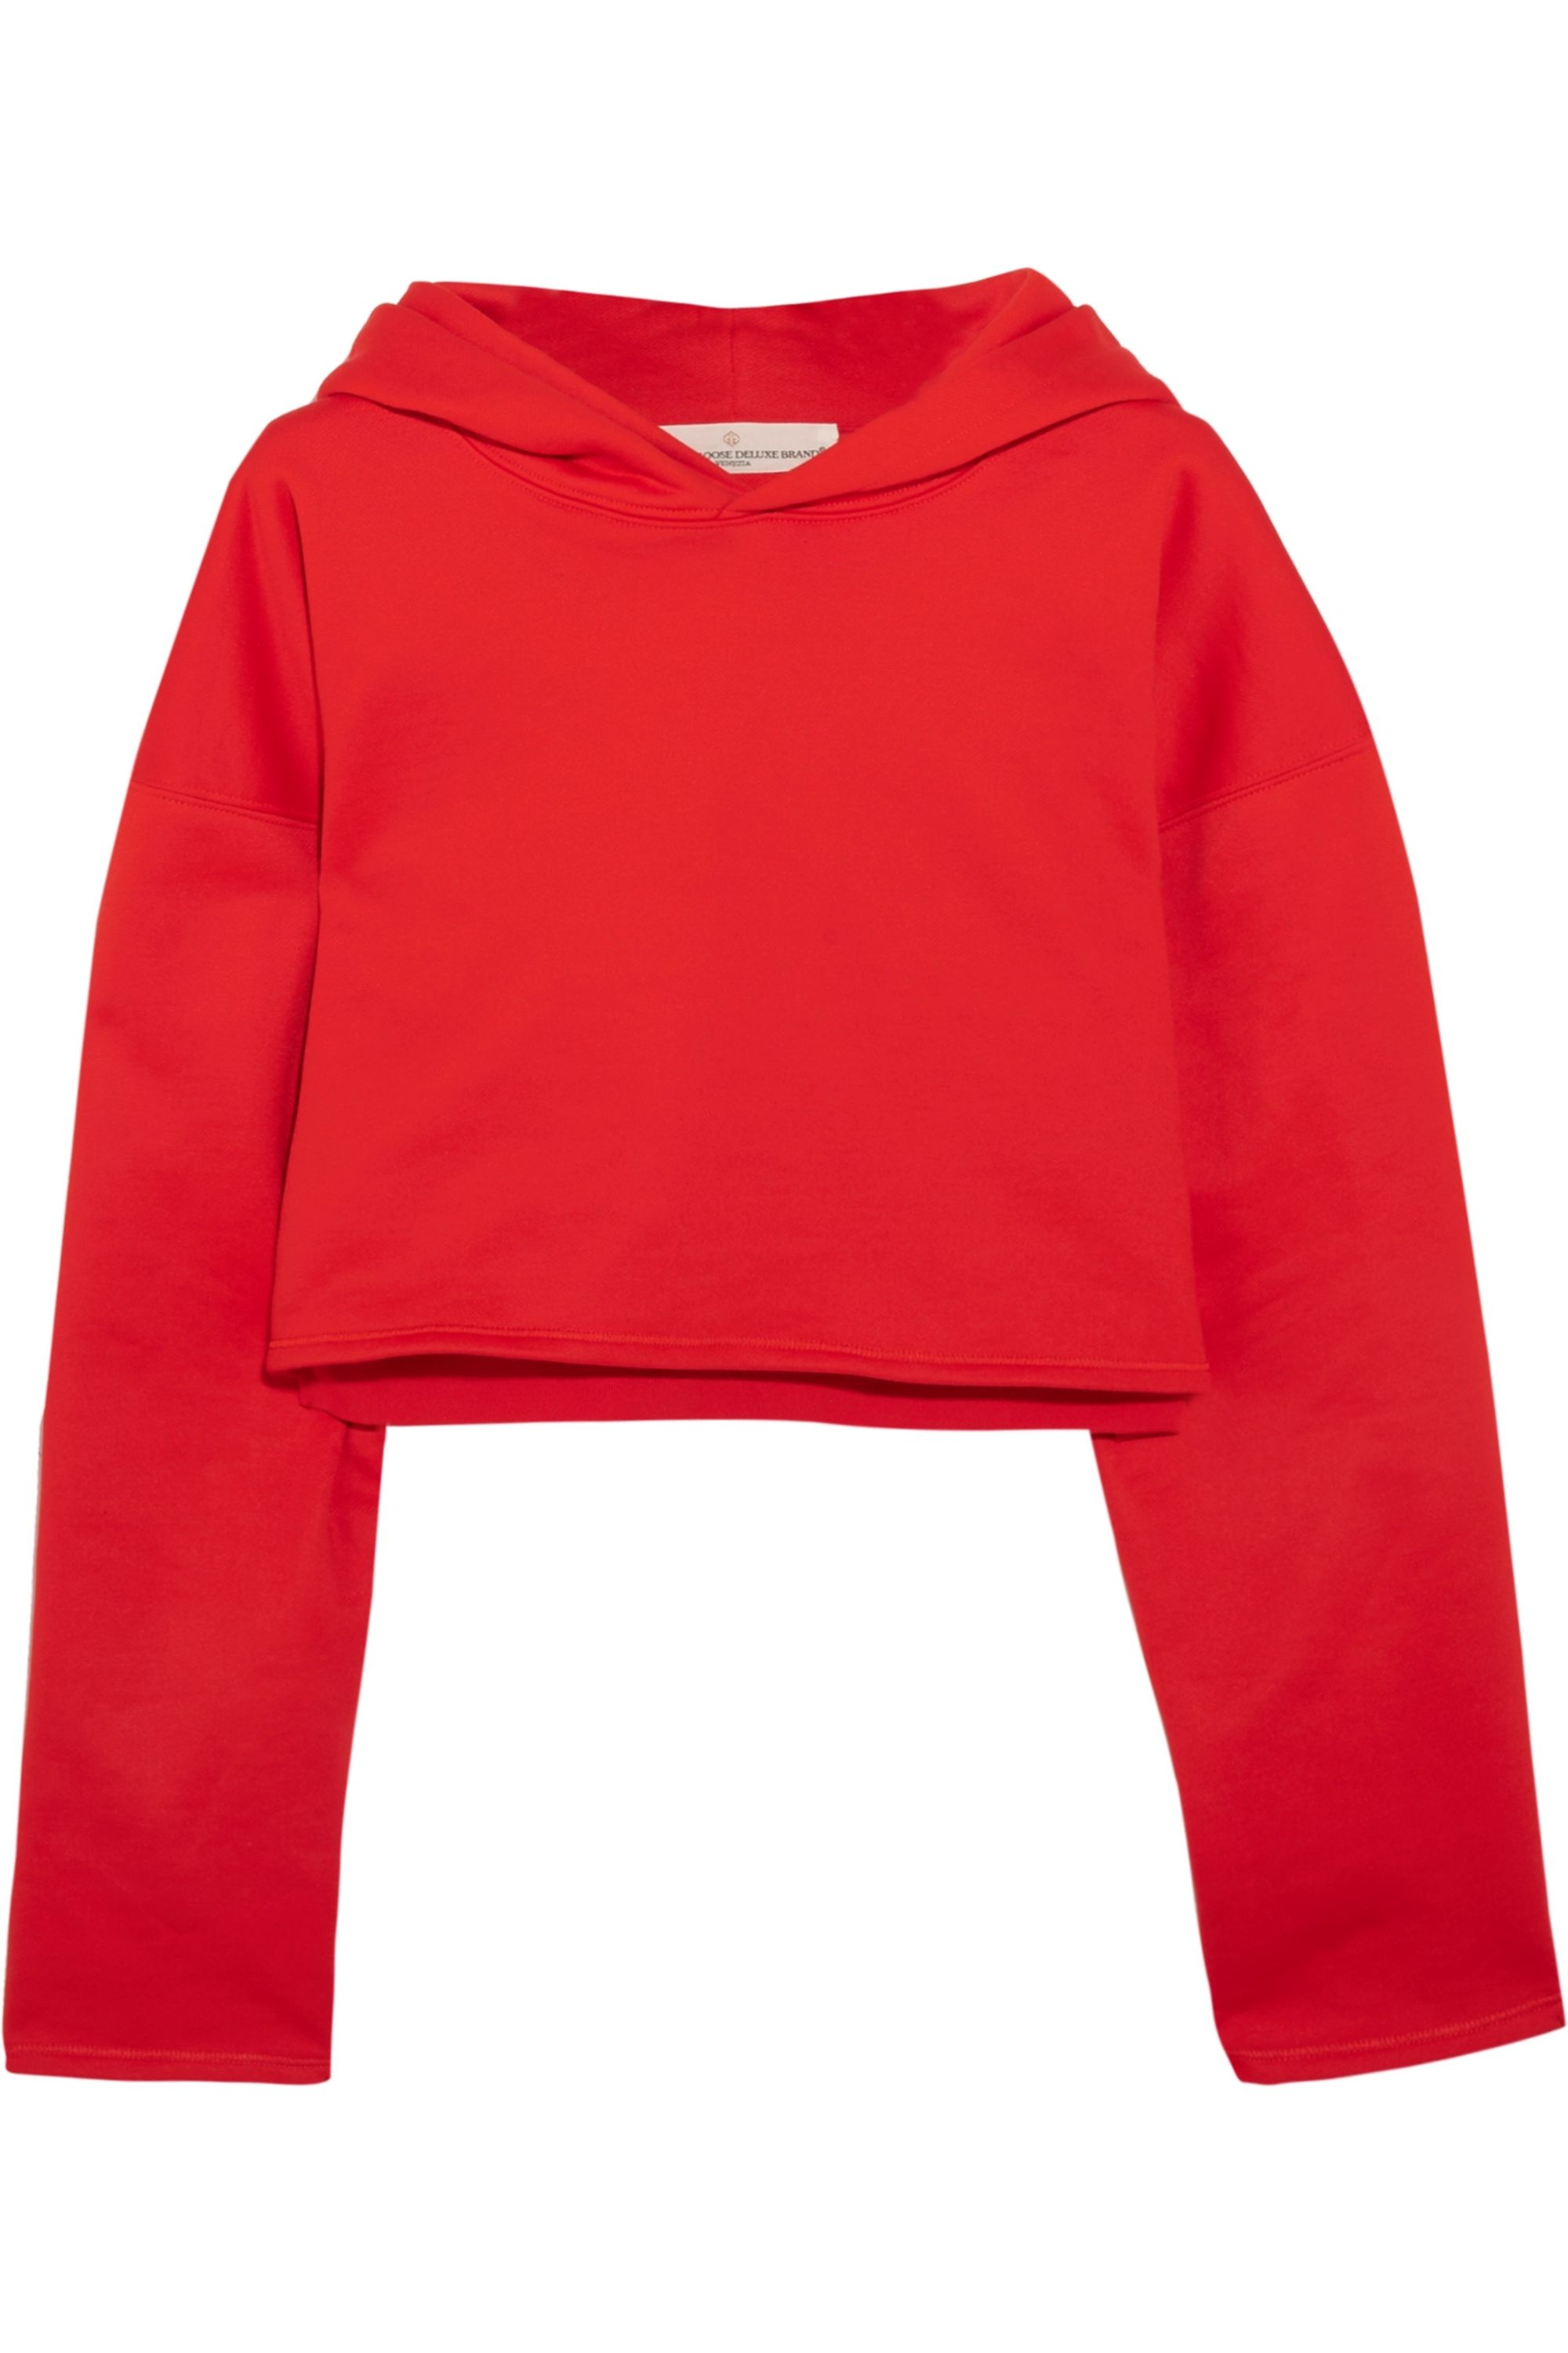 Golden Goose Cropped cotton-jersey hooded top